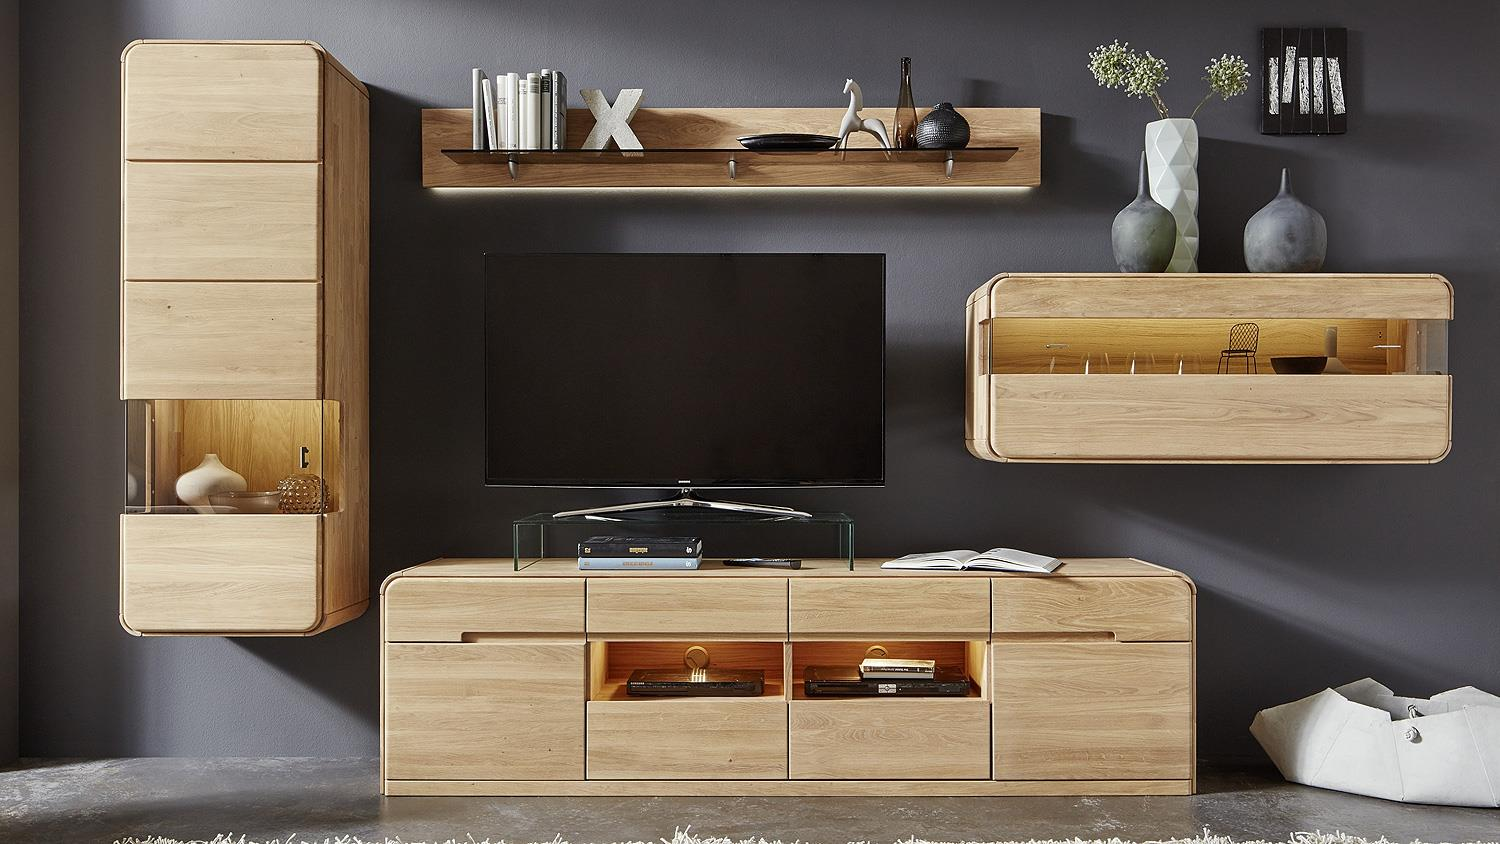 wohnwand round anbwaund wohnkombi wohnzimmer in eiche. Black Bedroom Furniture Sets. Home Design Ideas